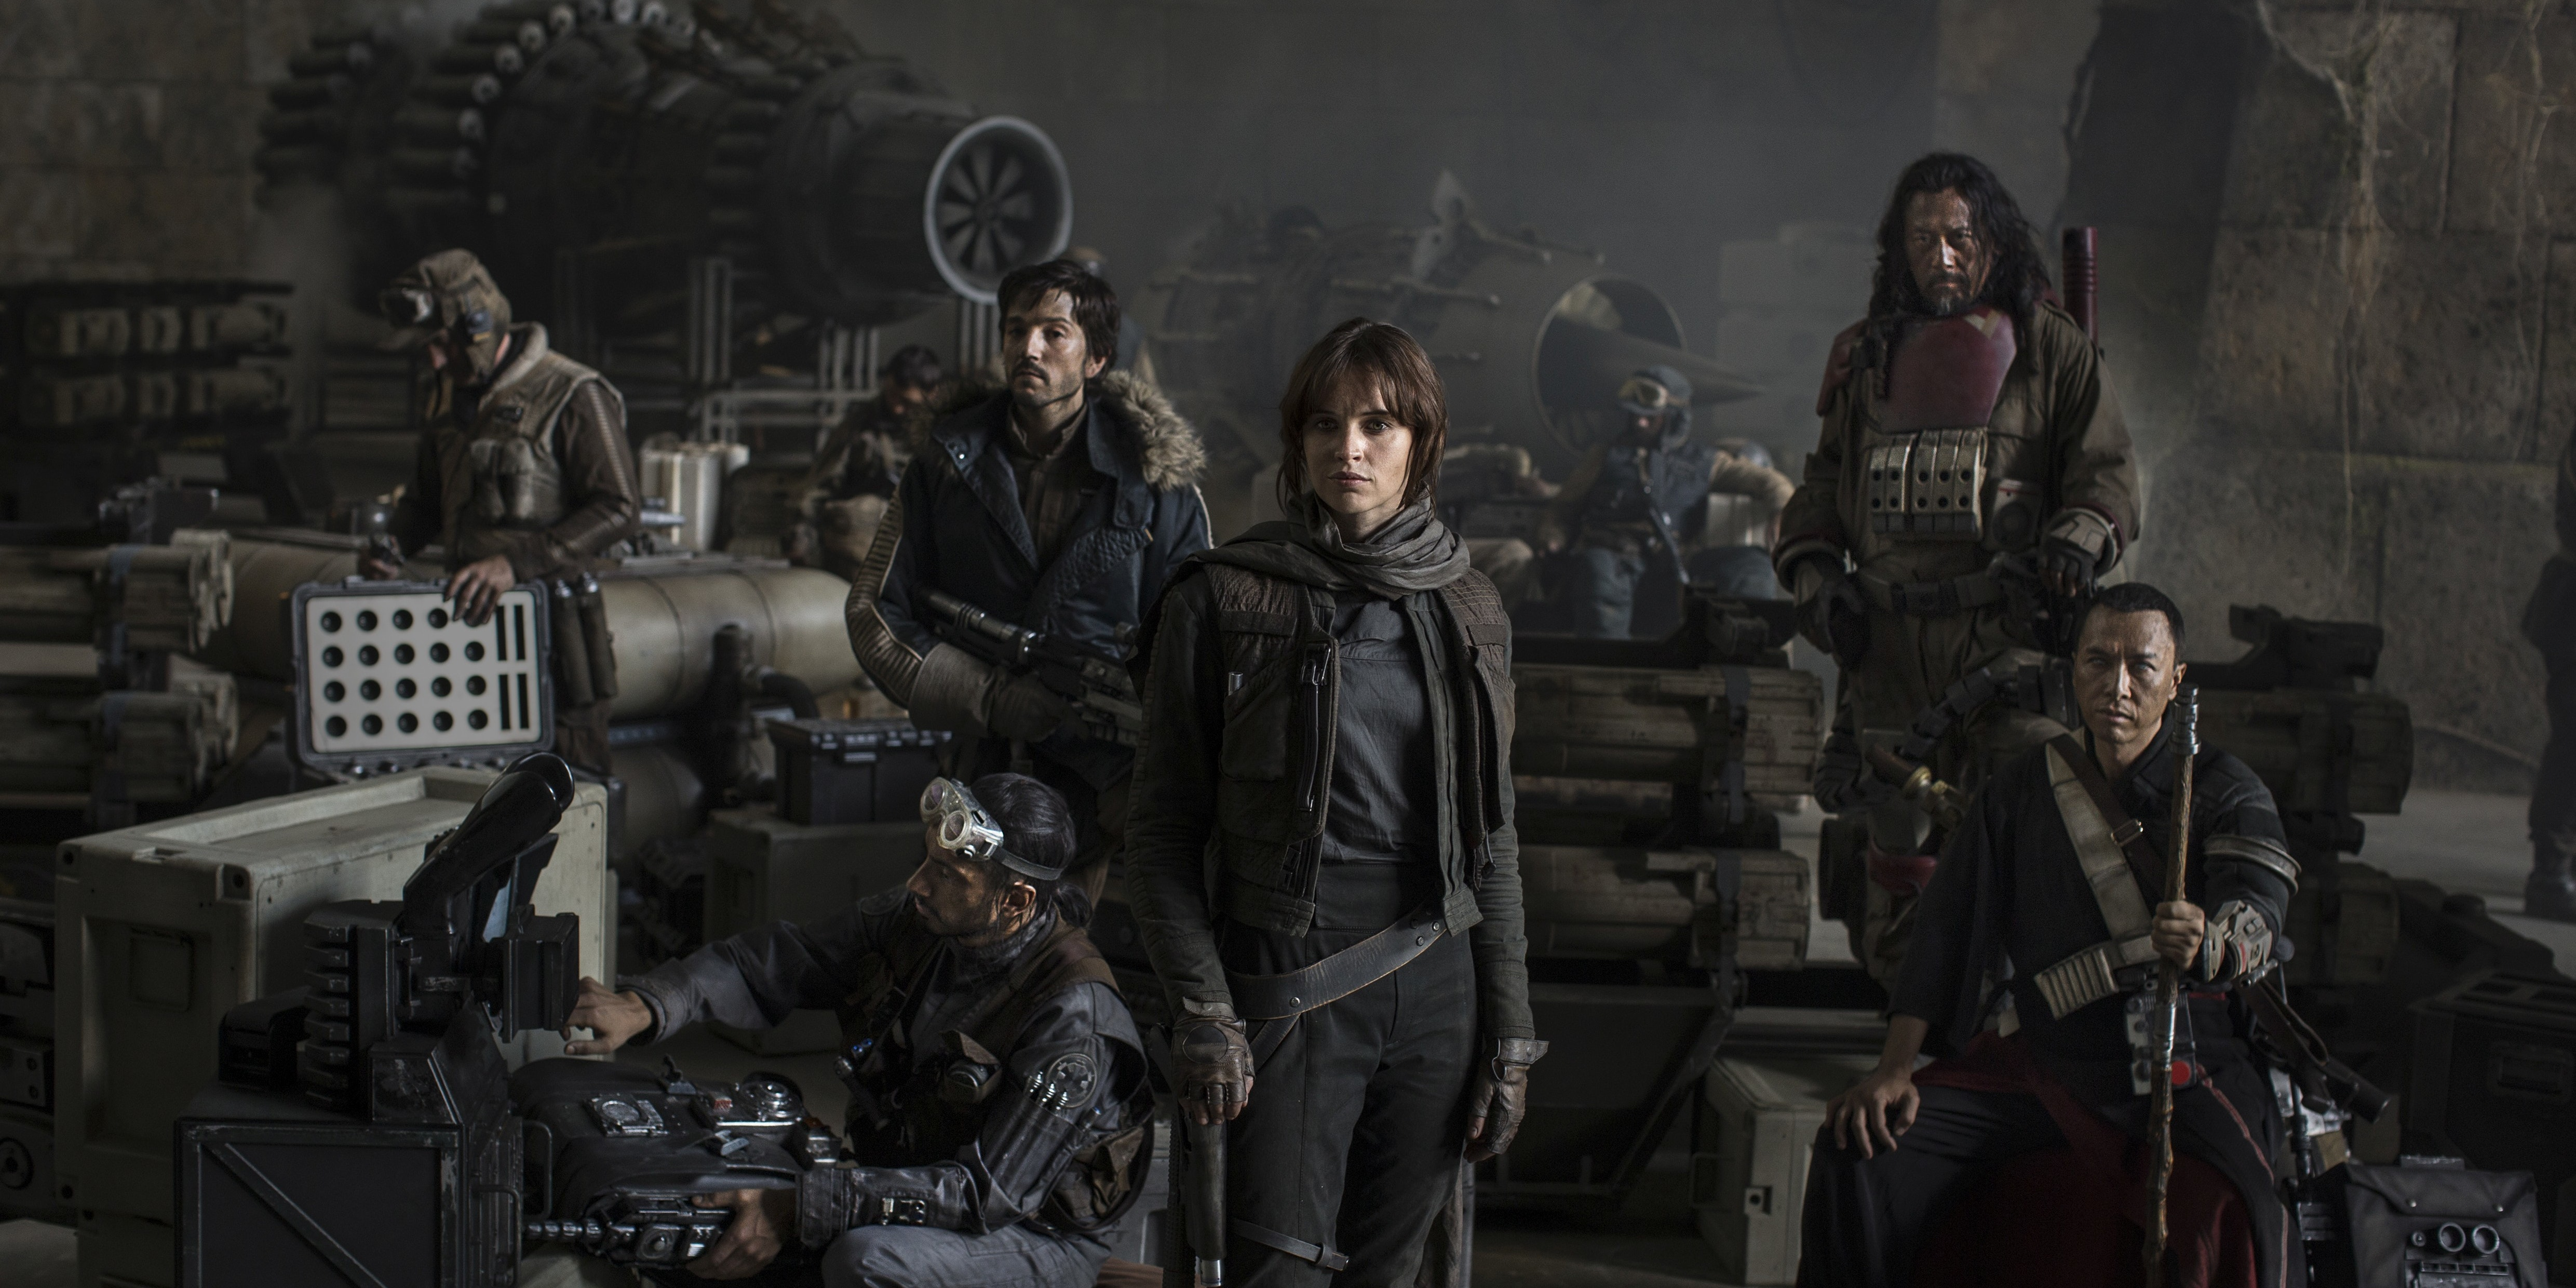 'Rogue One: A Star Wars Story' Will Be A Science Fiction Period Piece